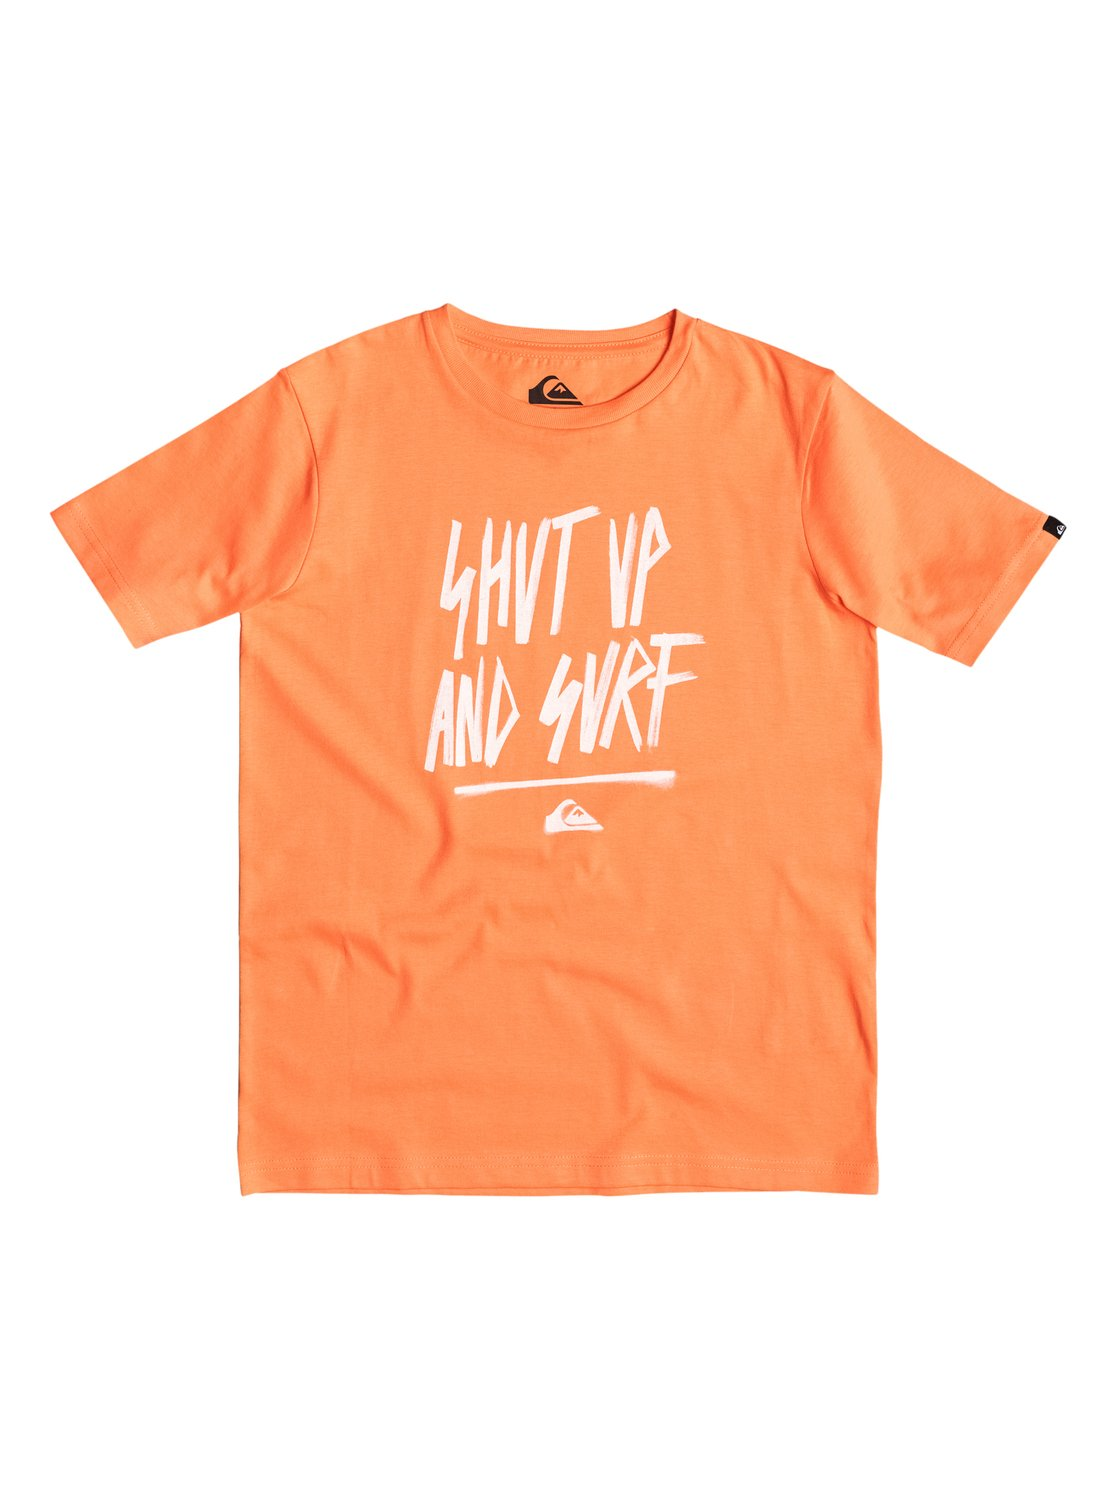 Boy's Classic Shut Up T-Shirt